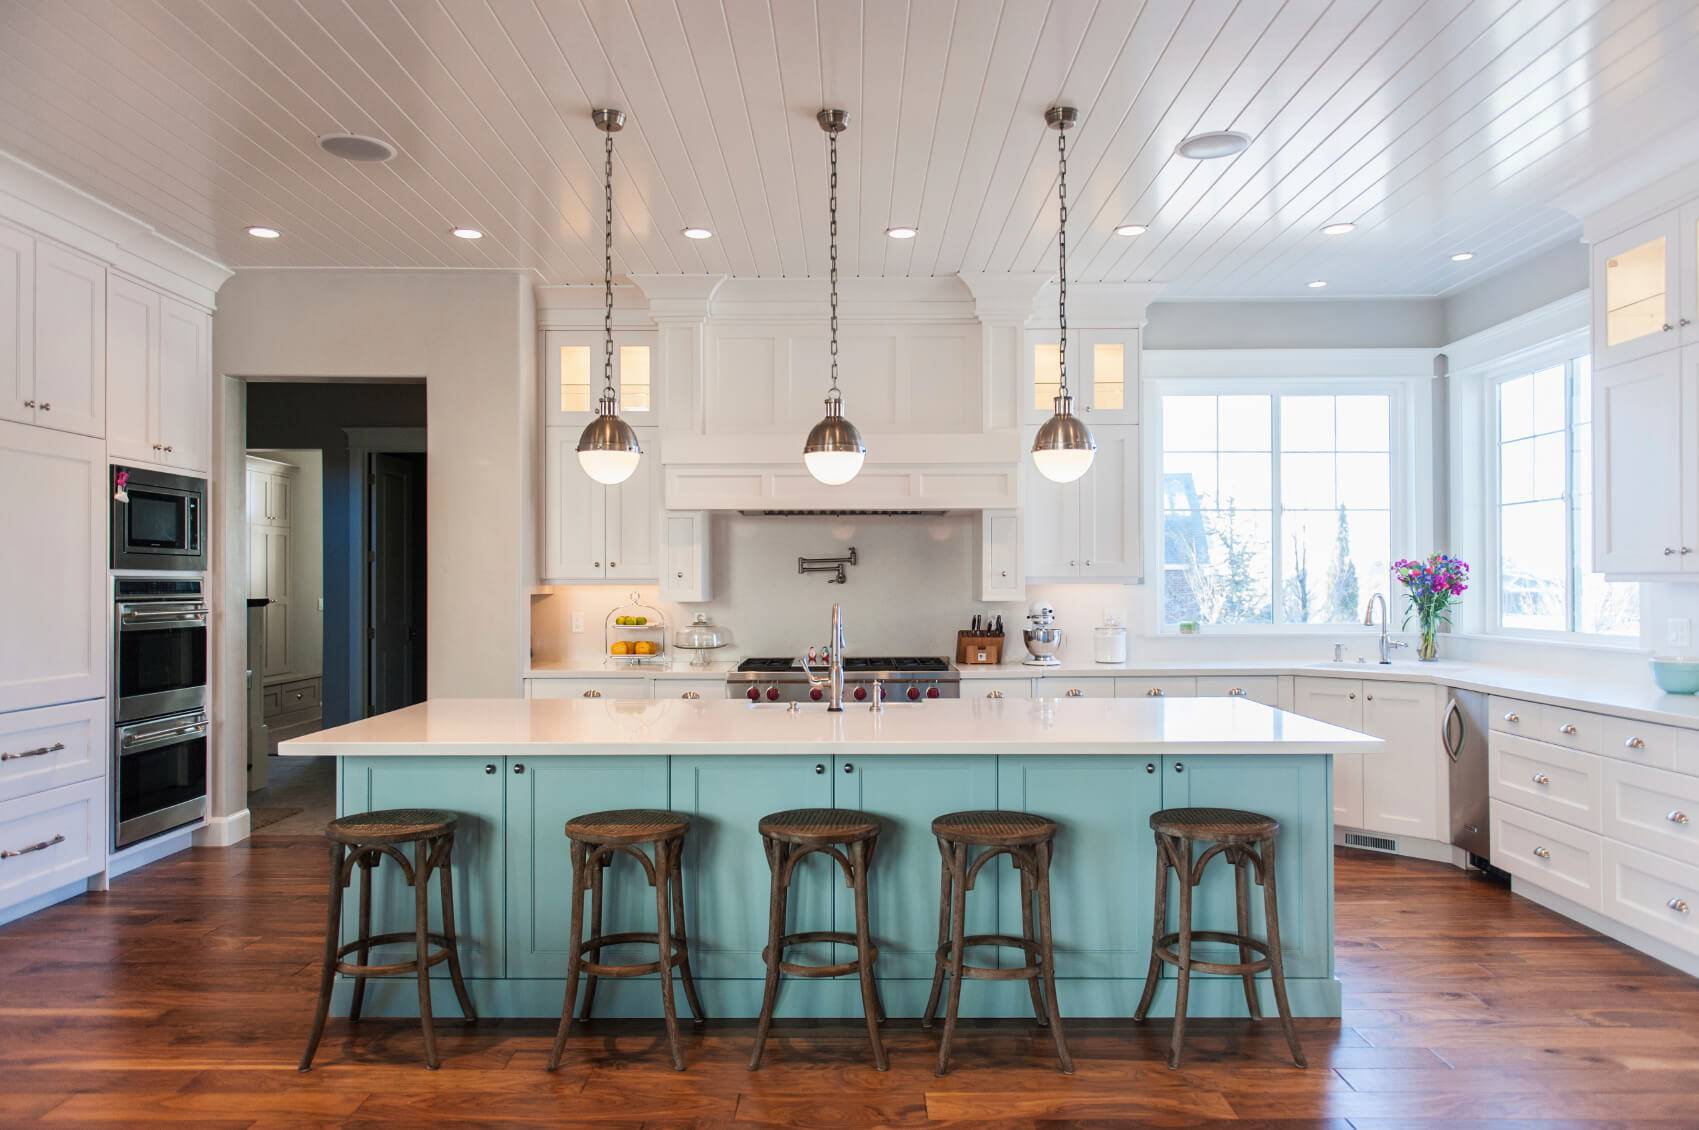 extra-kitchen-counter-space-ideas_cabinet-color-palettes_pendant-light-over-island_kitchen-island-design-with-stove_faucet-satin-nickel-finish.jpg